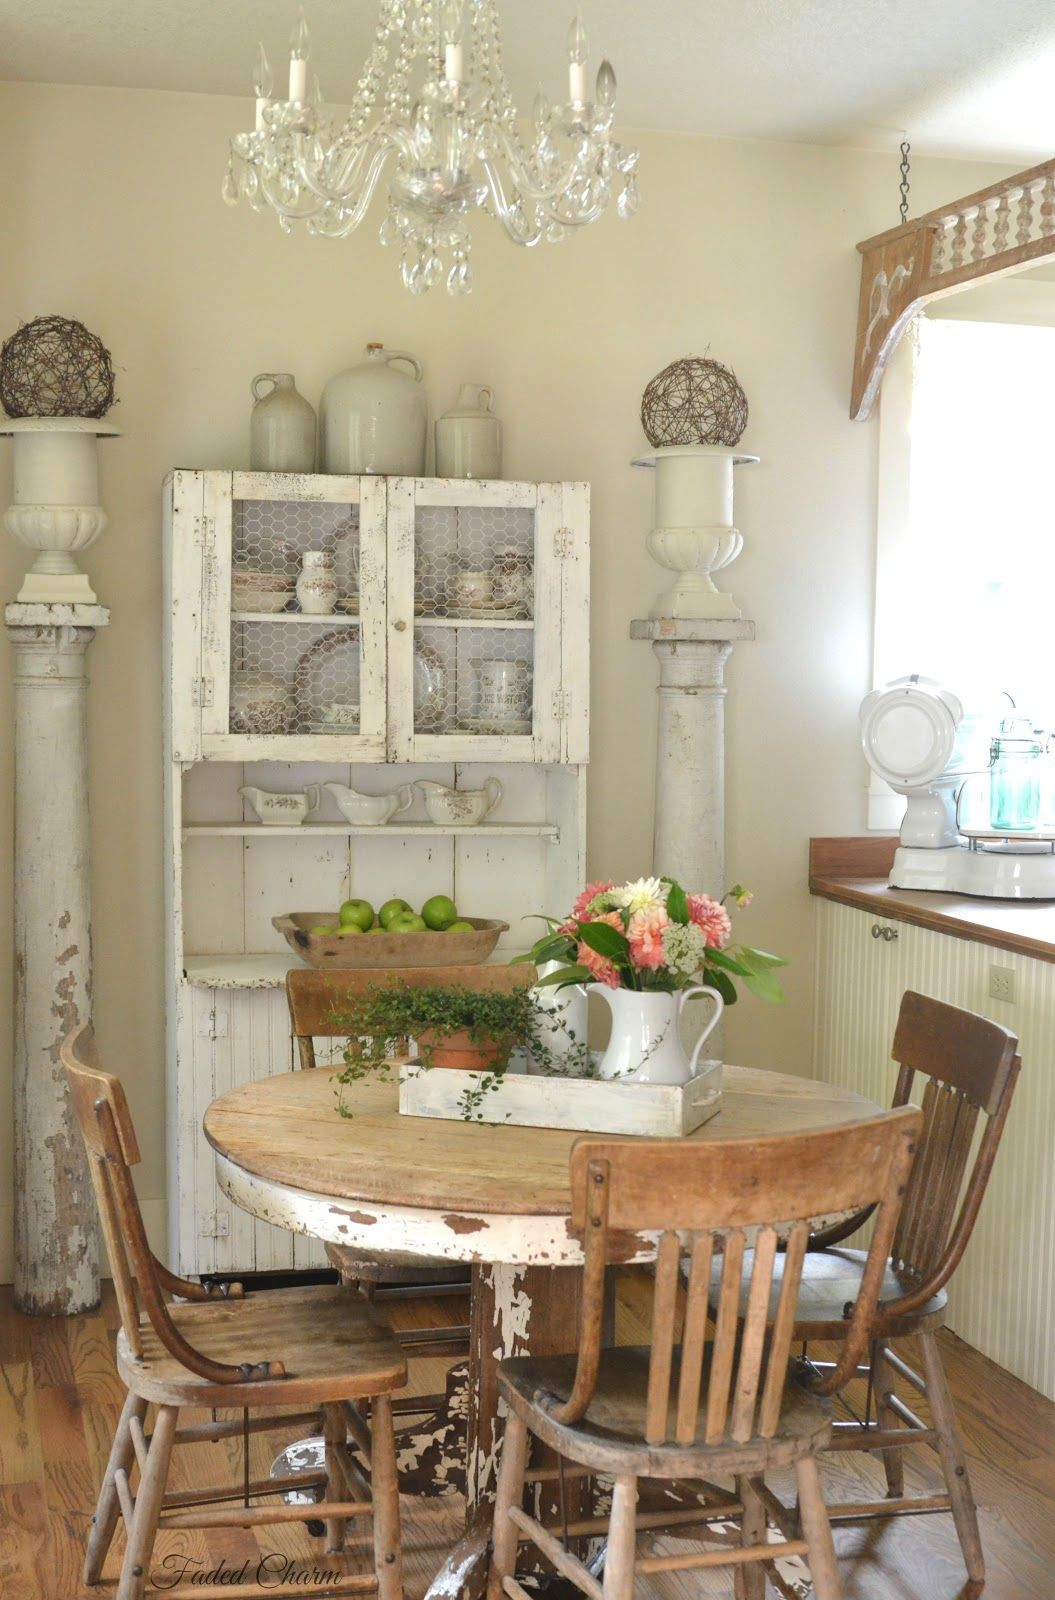 Faded Charm Farmhouse Fresh Dining Room Inspiration